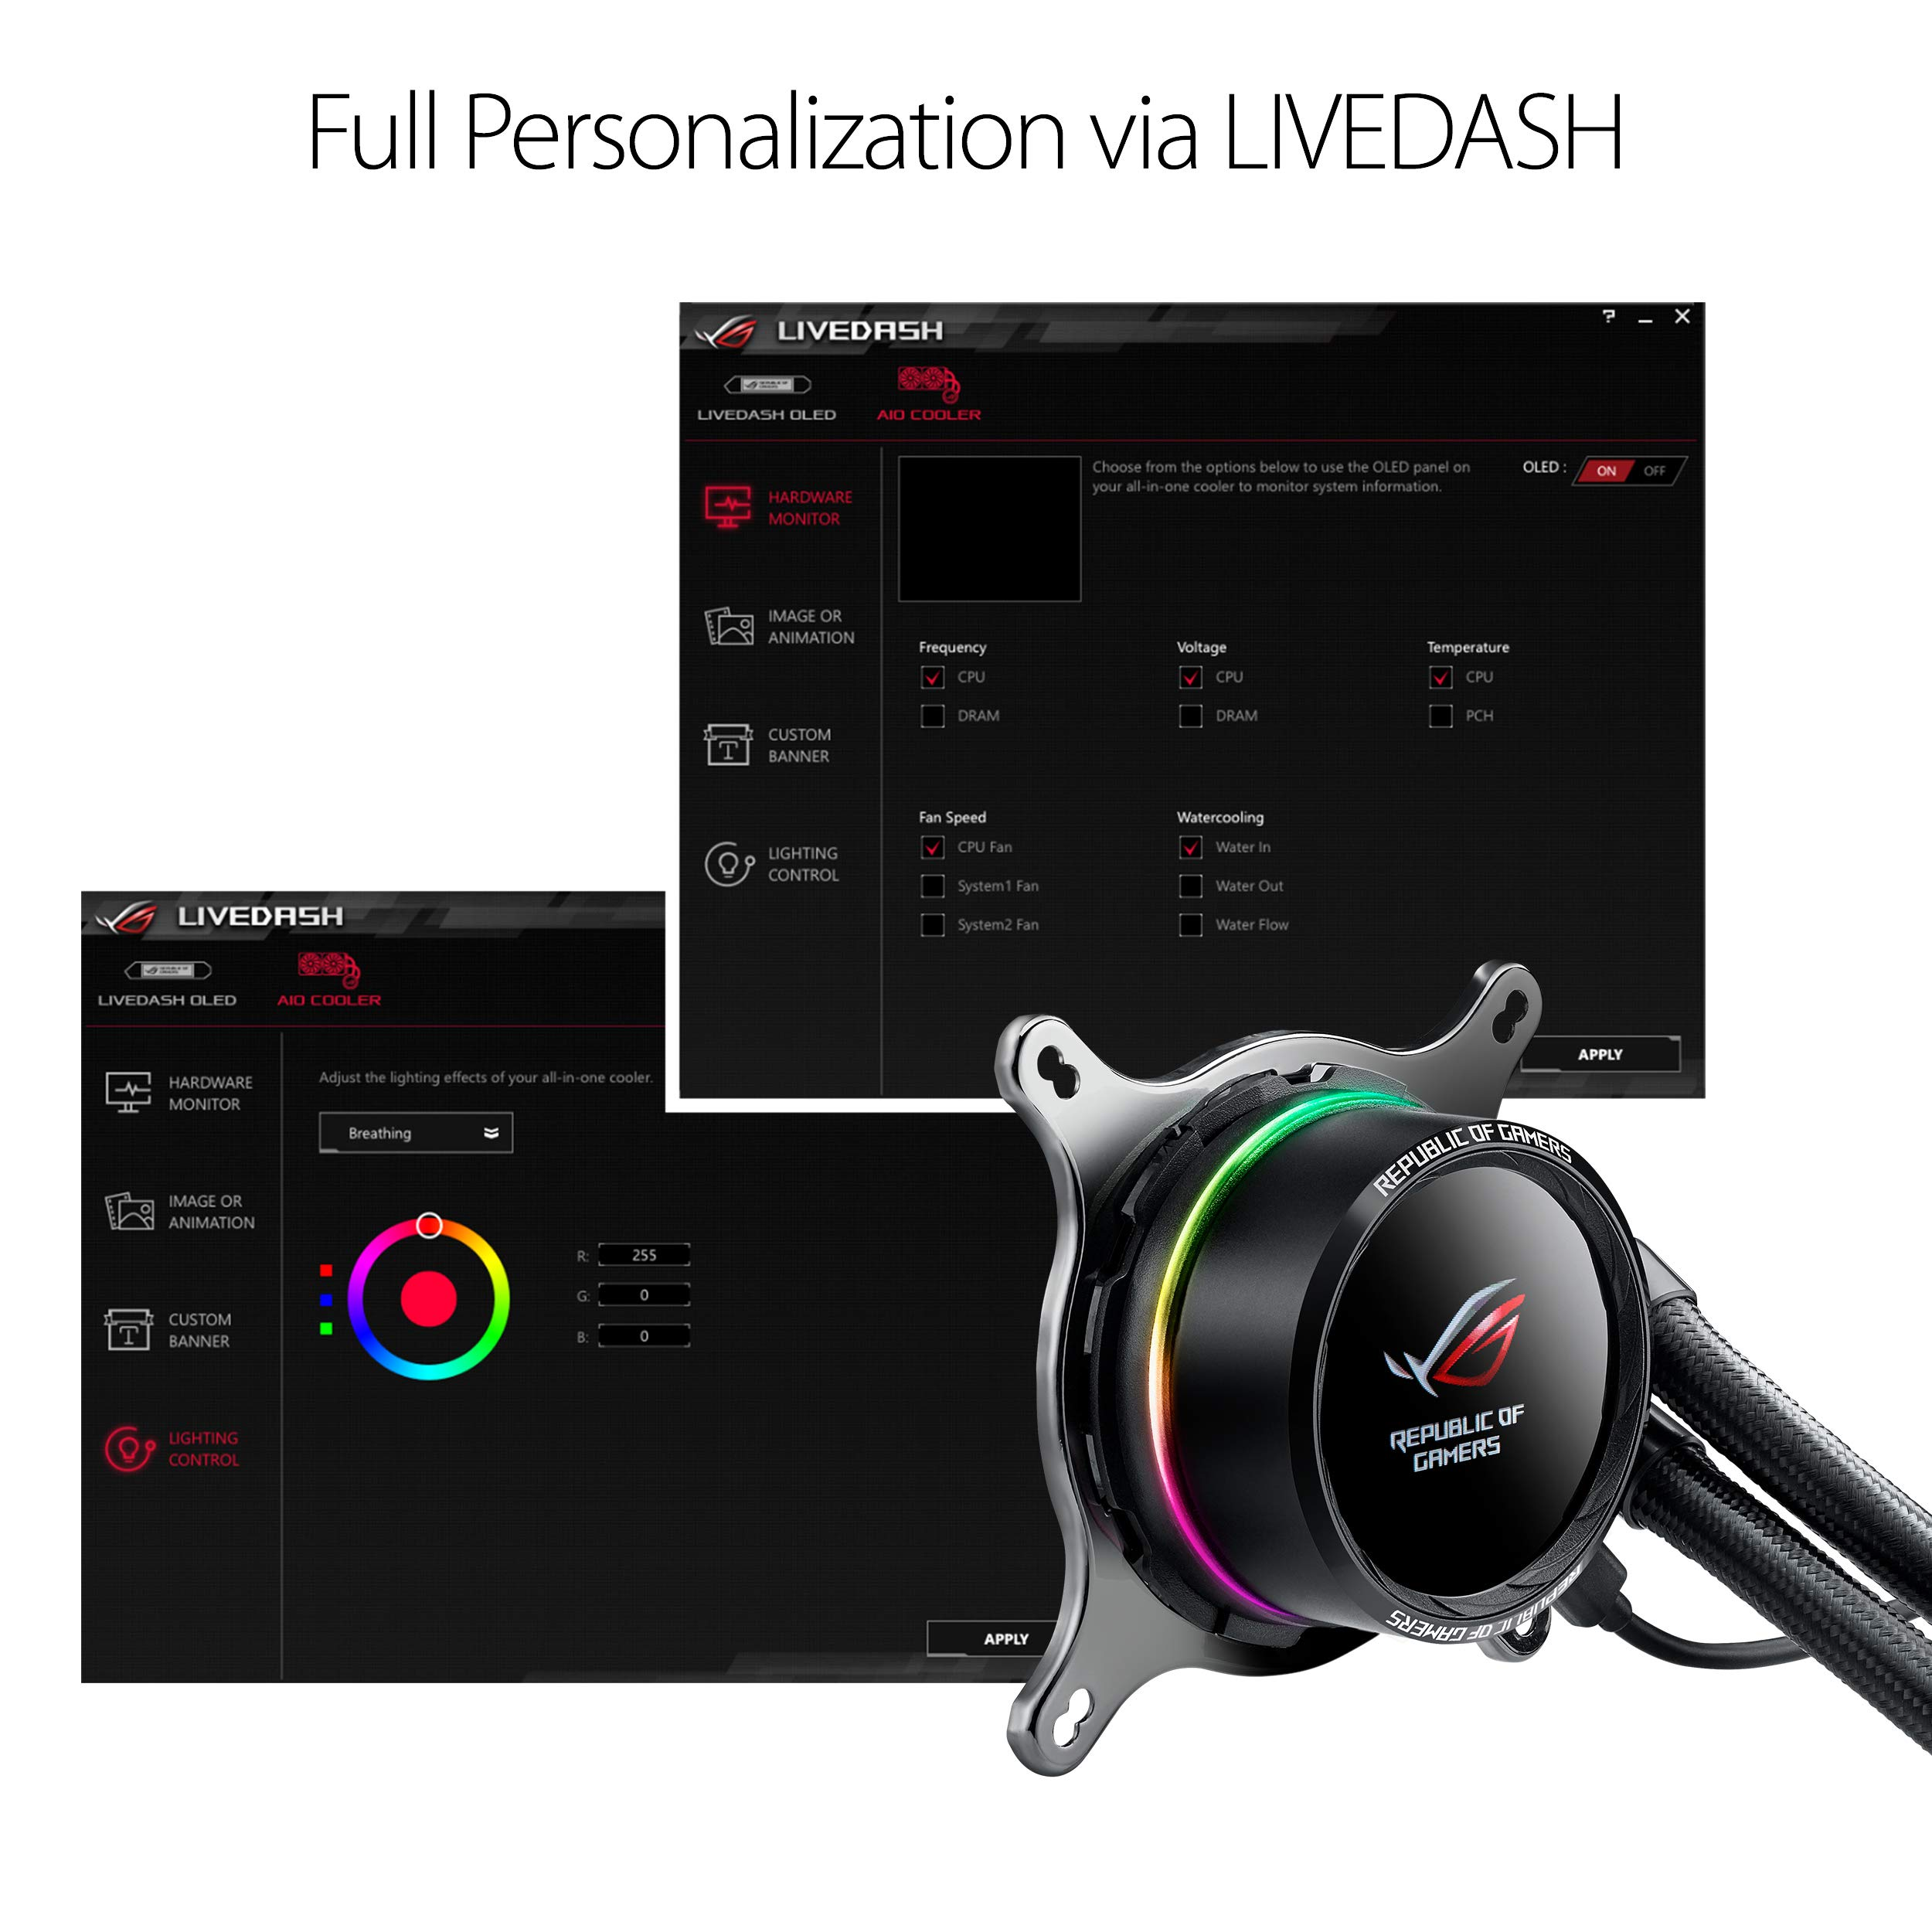 ASUS ROG RYUO 240 RGB AIO Liquid CPU Cooler 240mm Radiator Dual 120mm 4-Pin PWM Fan with OLED Panel & Fan Control 1.77'' by ASUS (Image #4)